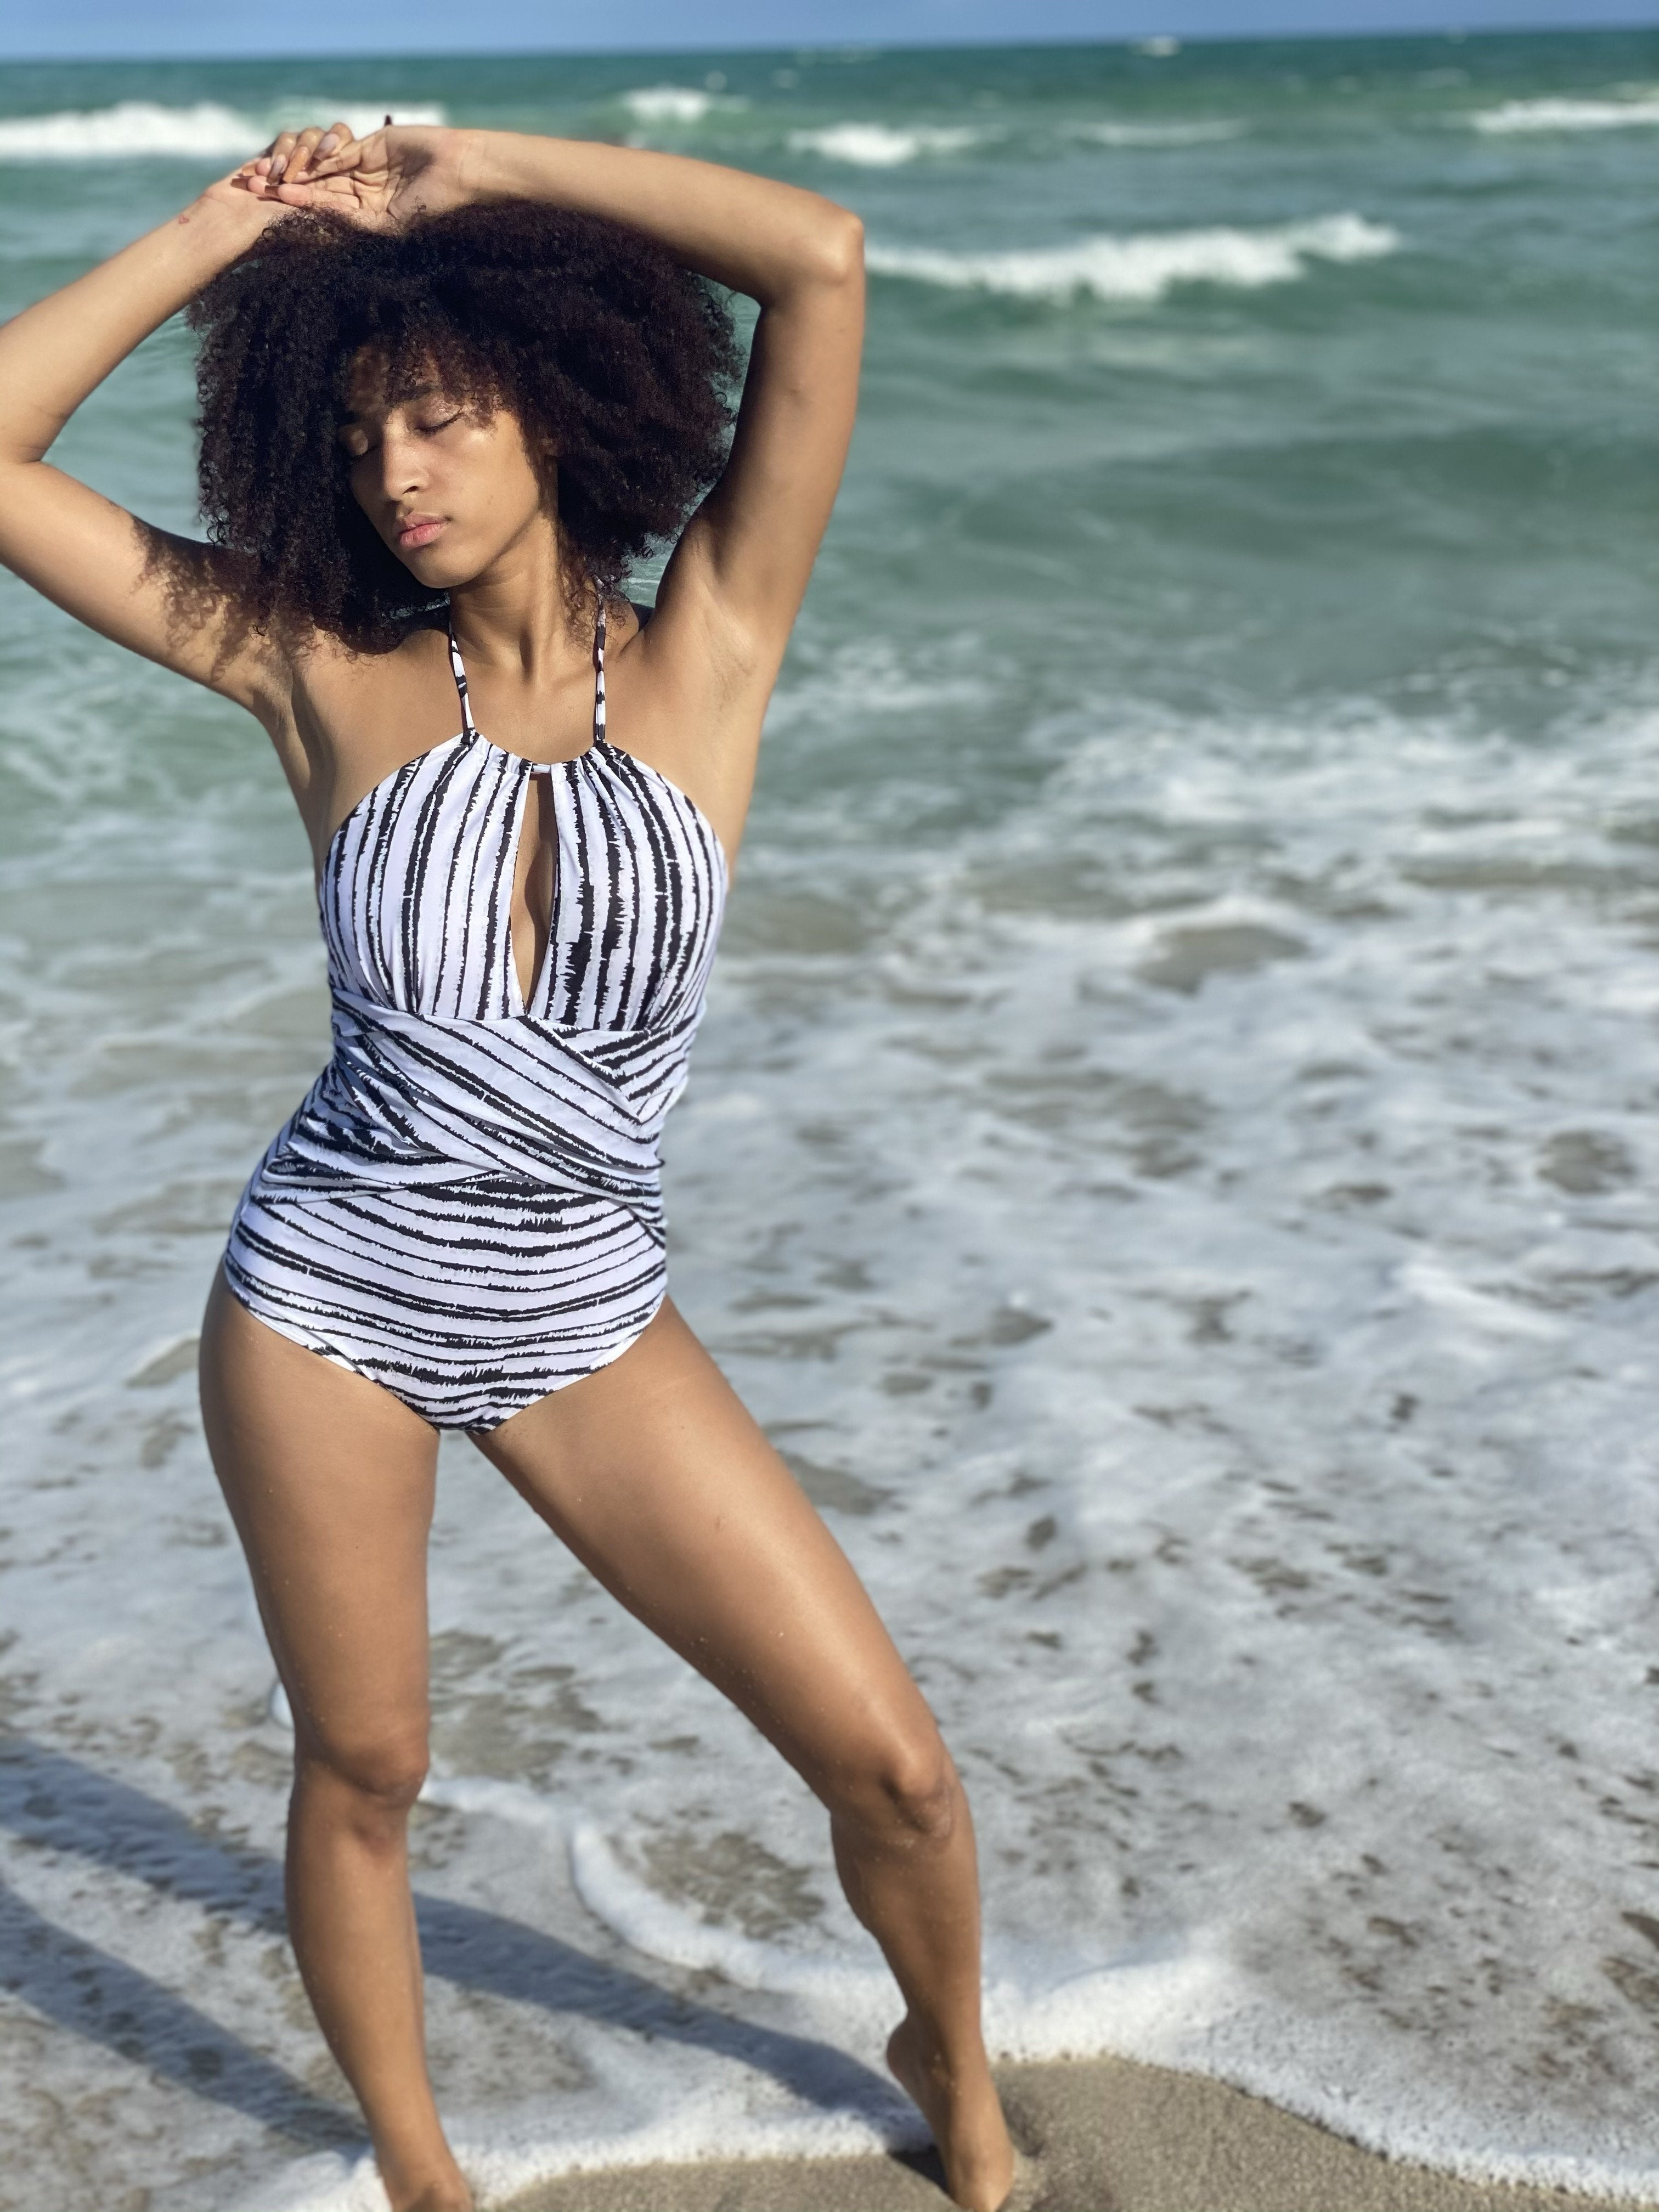 A model in the black and white striped one piece